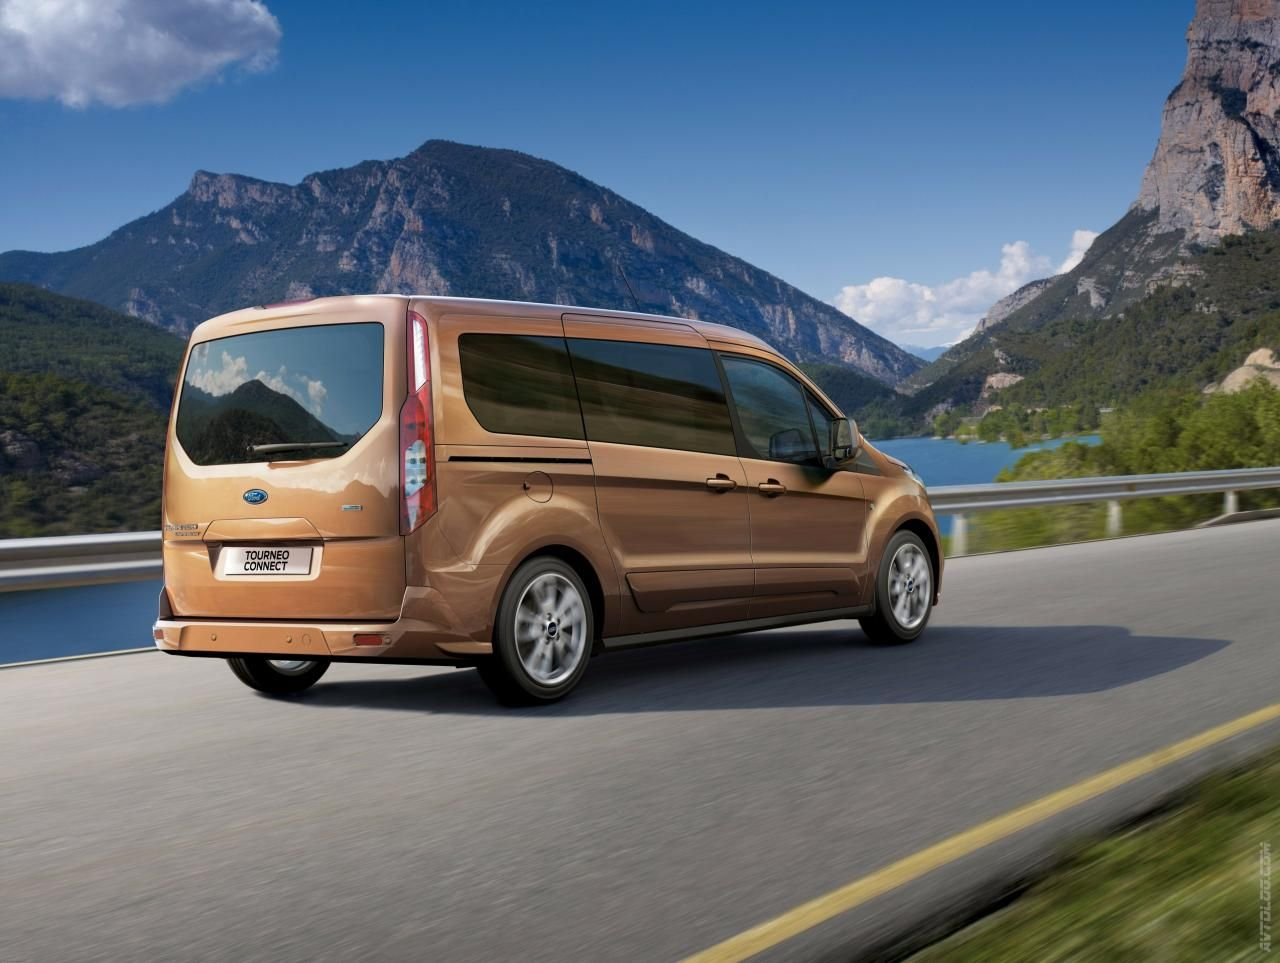 Ford tourneo courier pictures to pin on pinterest - 2014 Ford Transit Connect Wagon Bluespringsford